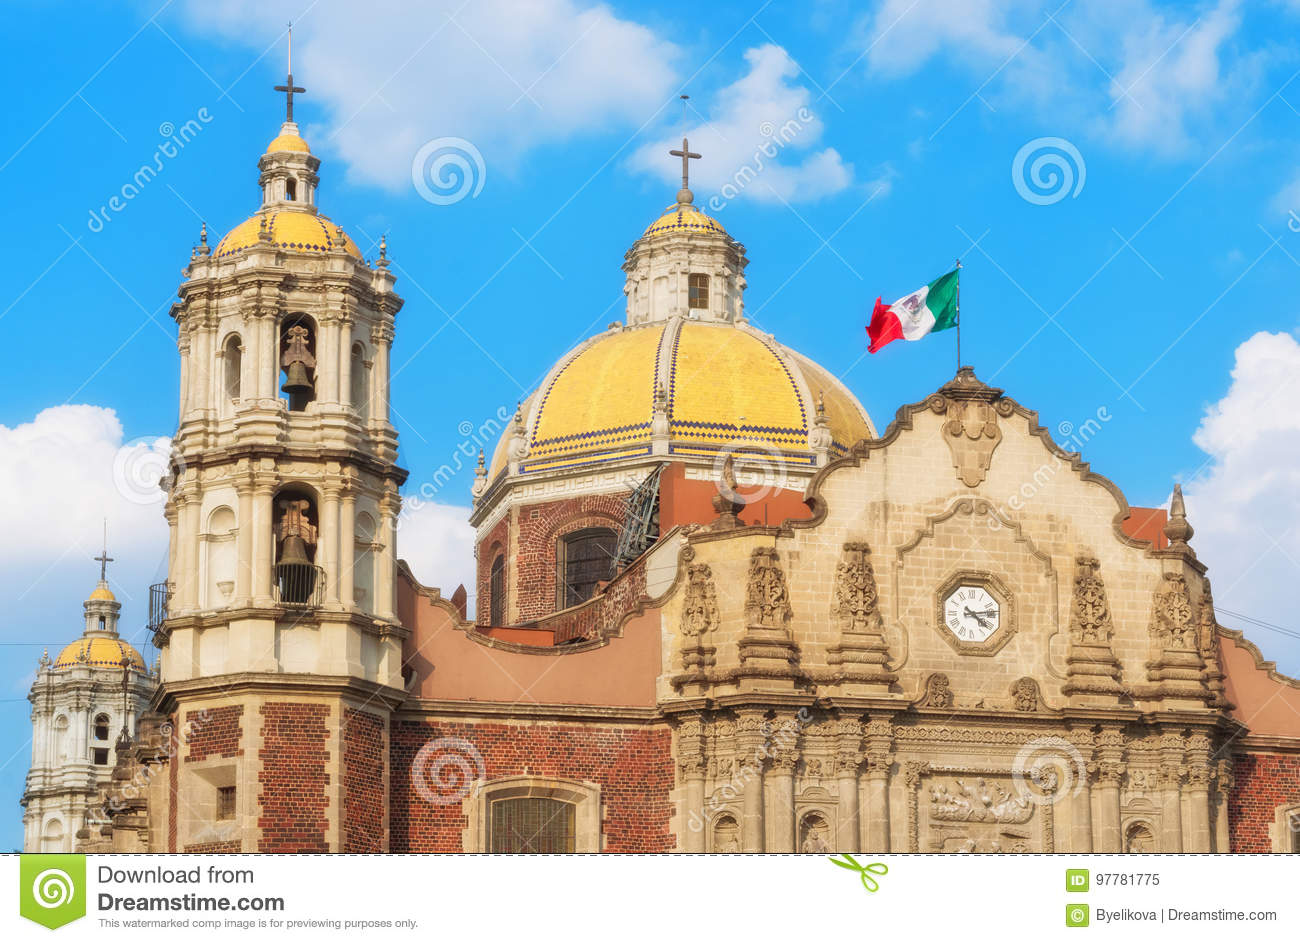 Old Basilica of Our Lady of Guadalupe in Mexico city